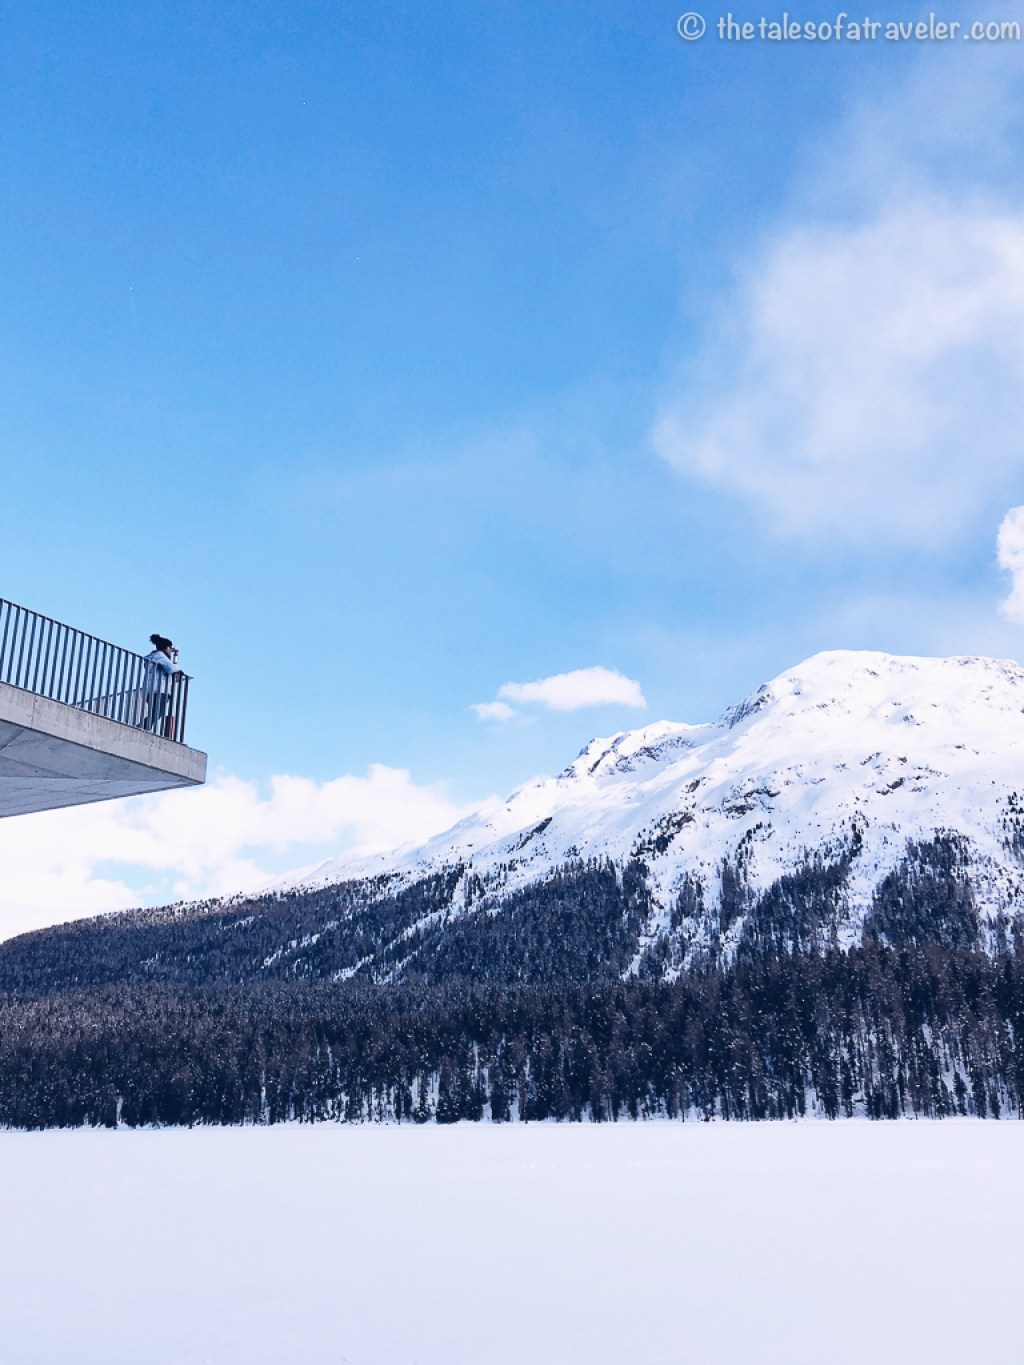 The Ultimate Guide to Top Things To Do in St. Moritz - St. Moritz lake